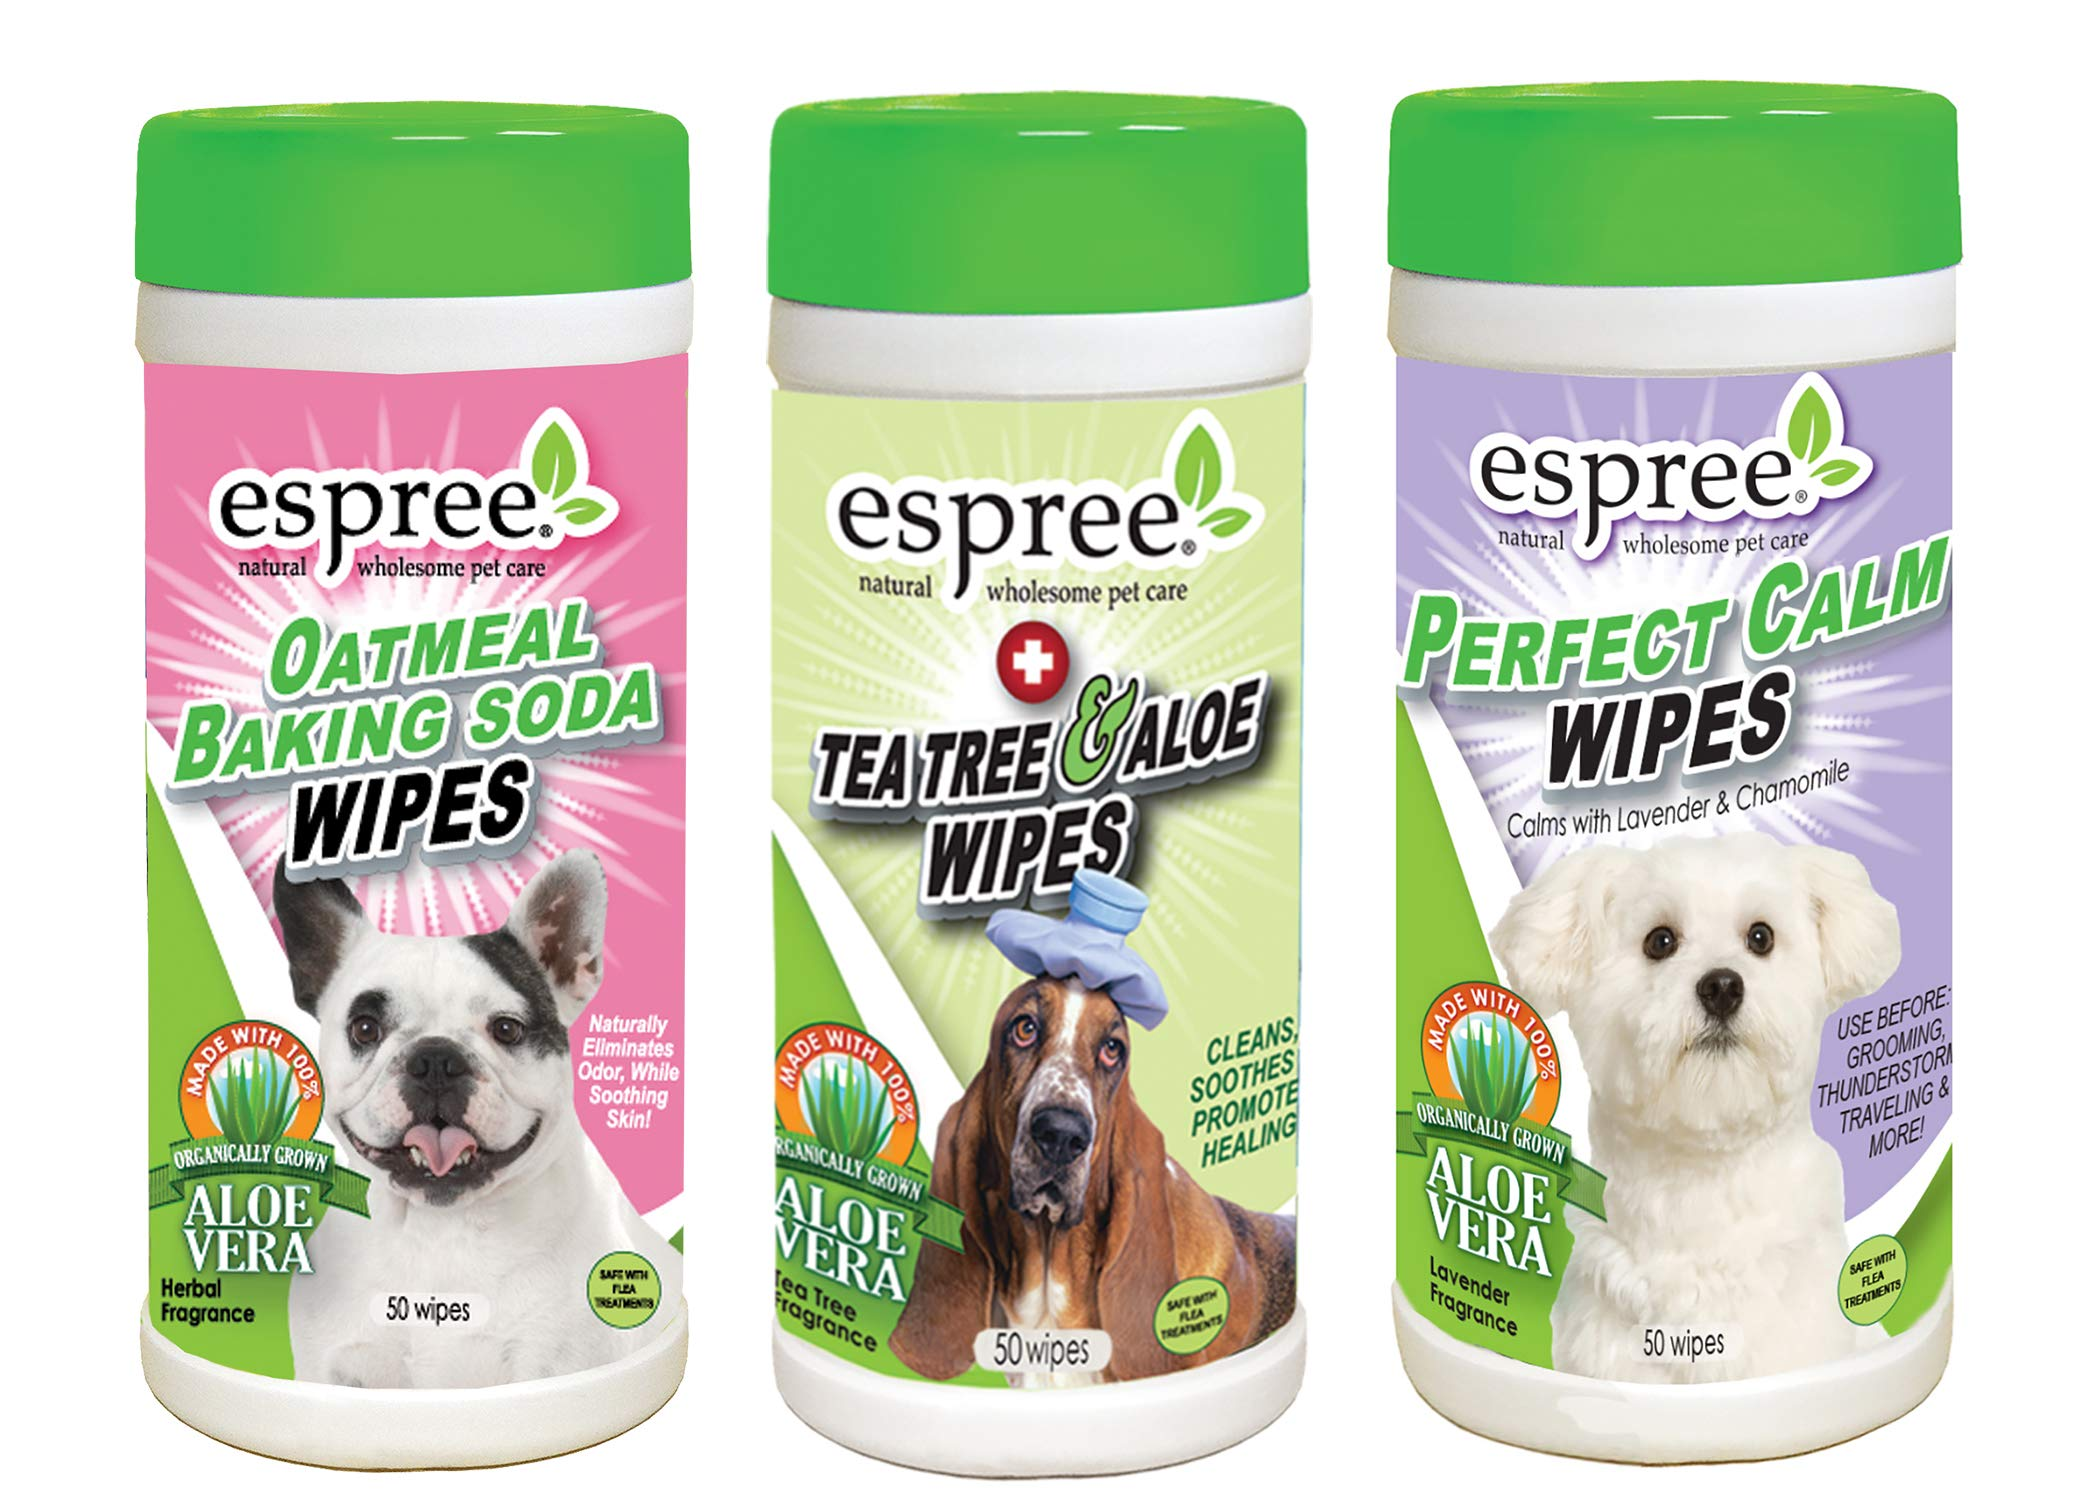 Espree Pet Wipe Variety Pack of Oatmeal, Lavender and Tea Tree 50 Count Each